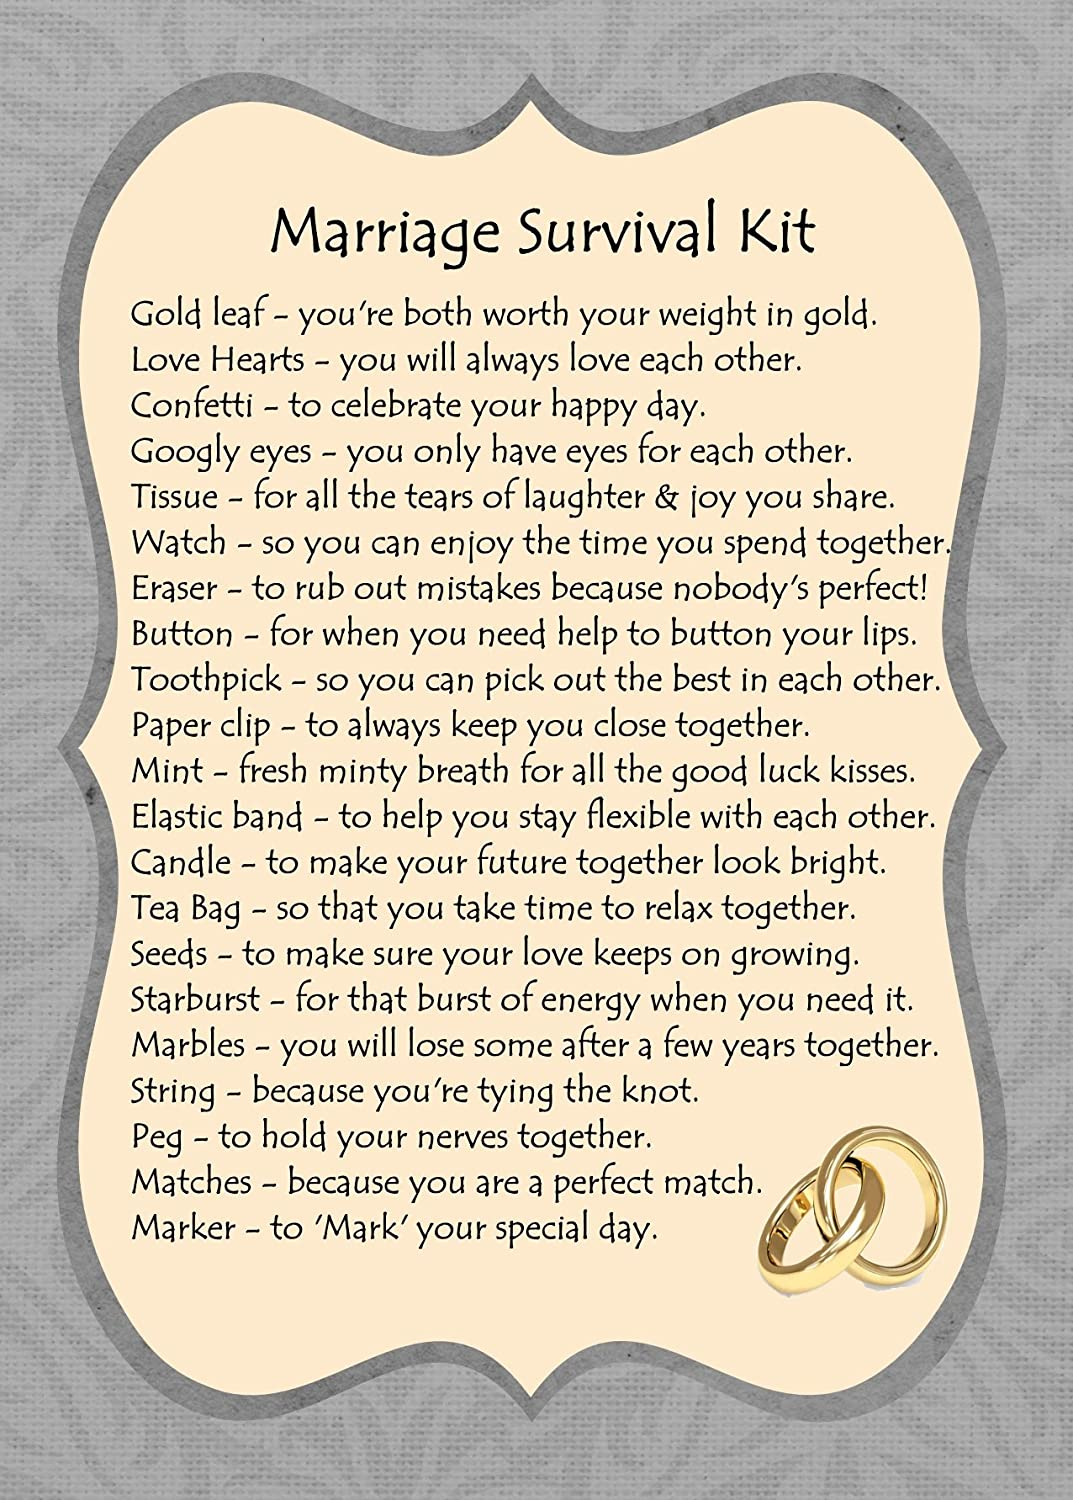 MARRIAGE SURVIVAL KIT GIFT CARD: Amazon.co.uk: Kitchen & Home